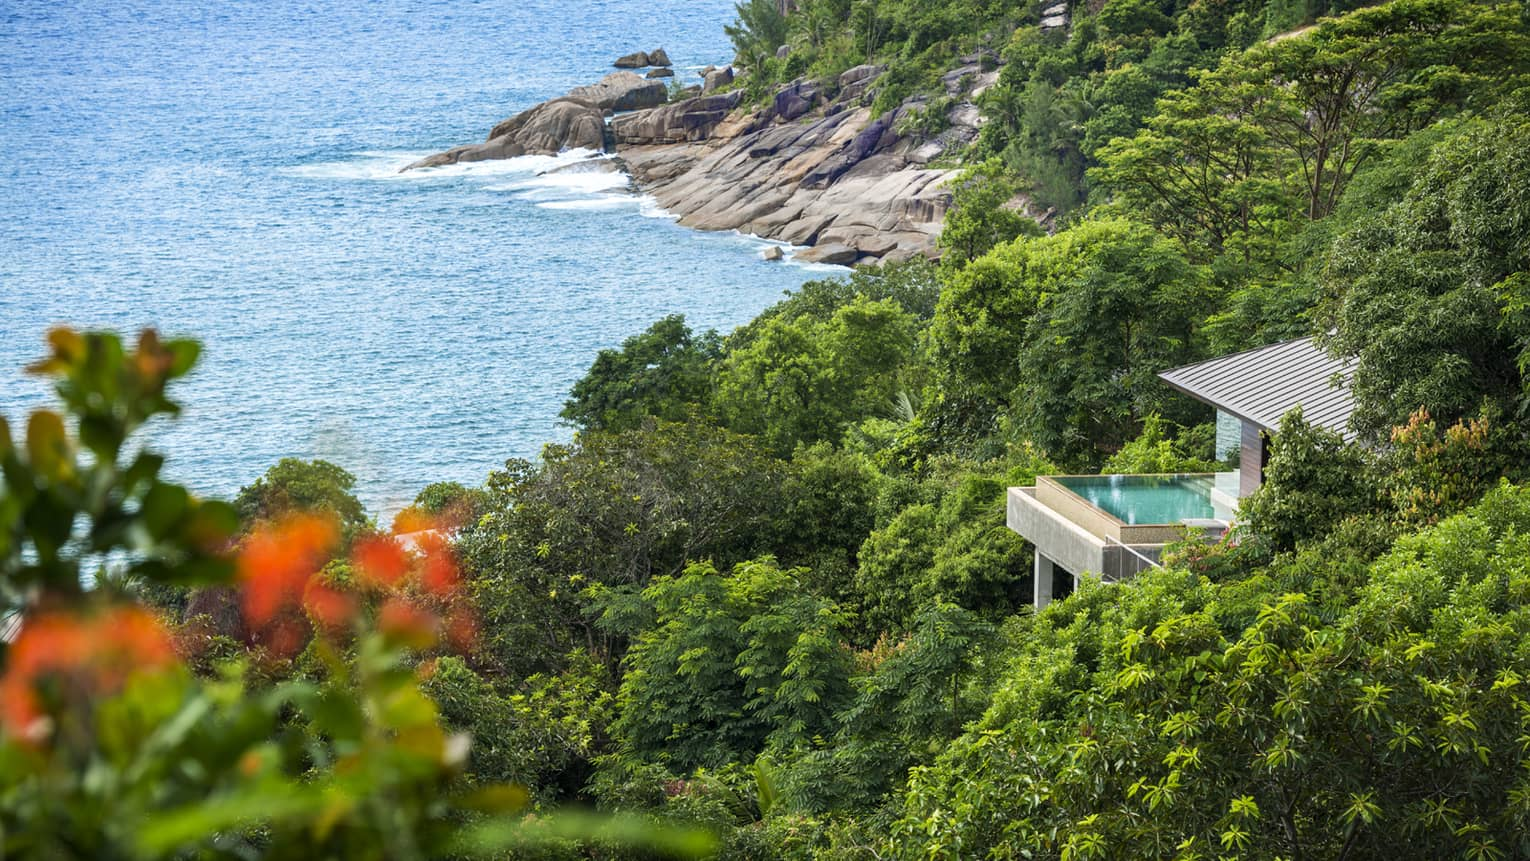 Overview of Villa nested among greenery, ocean and rocky shore below